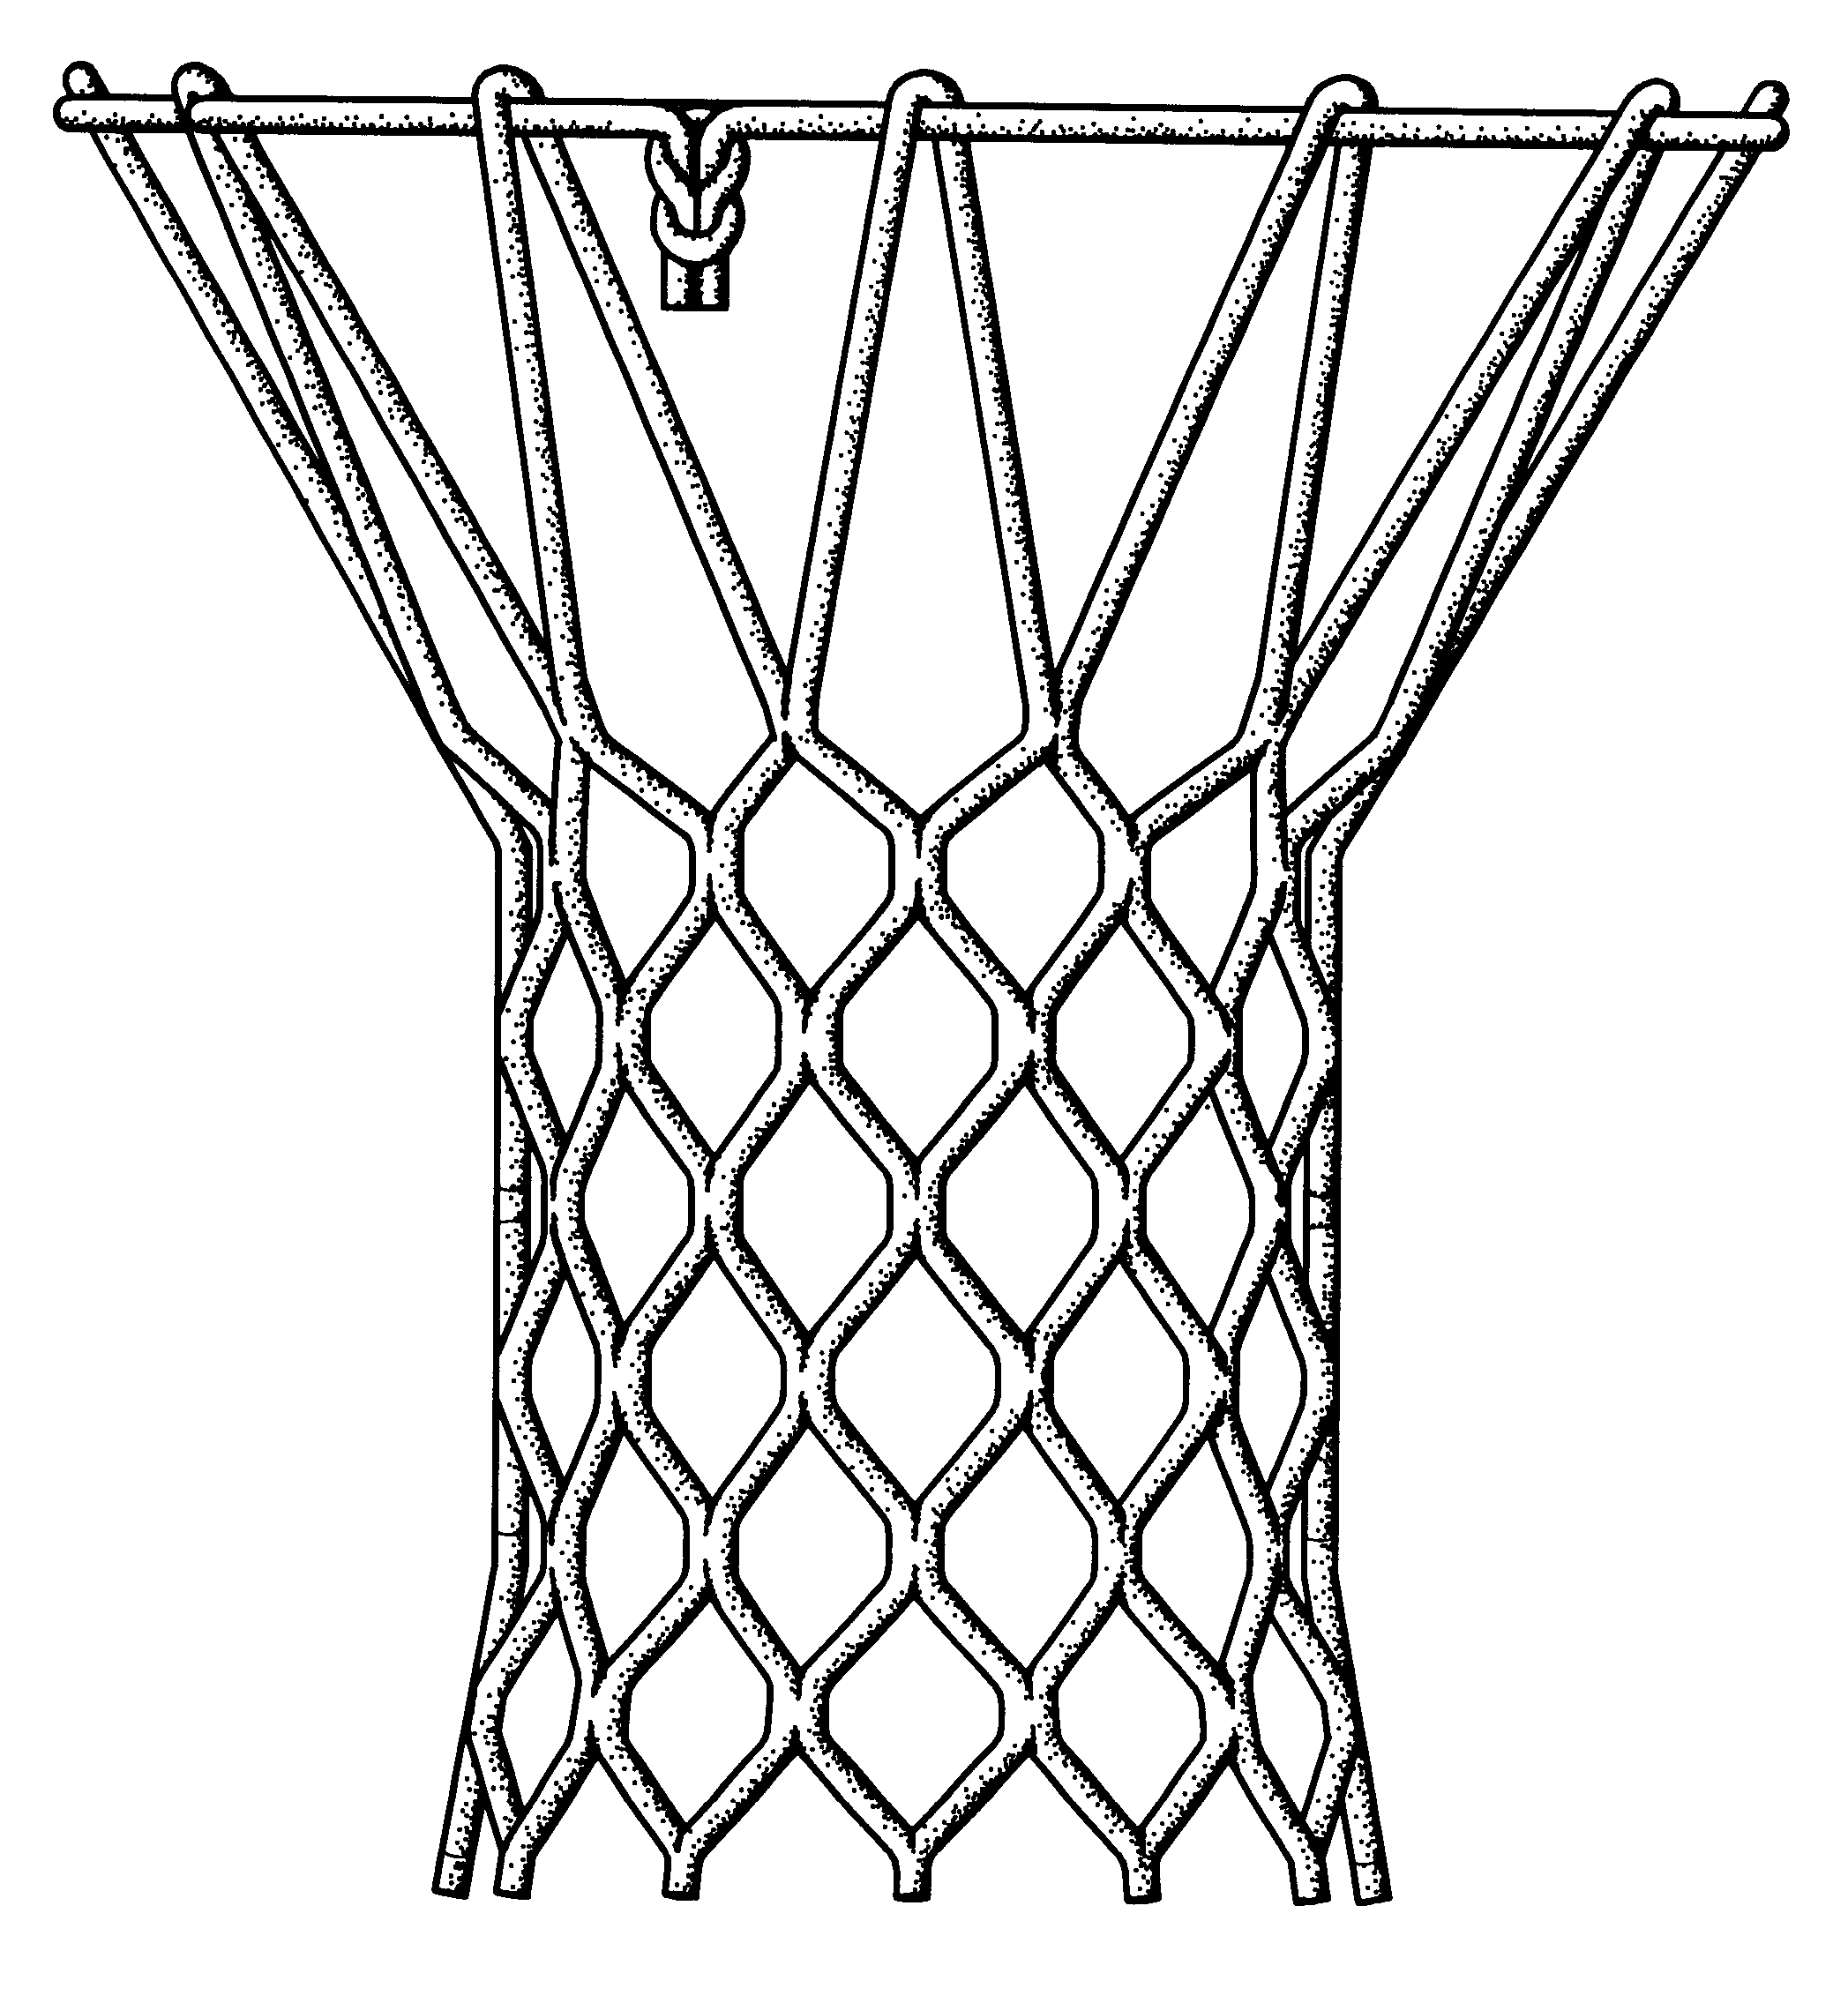 Free Basketball Hoop Cliparts Download Free Clip Art Free Clip Art On Clipart Library